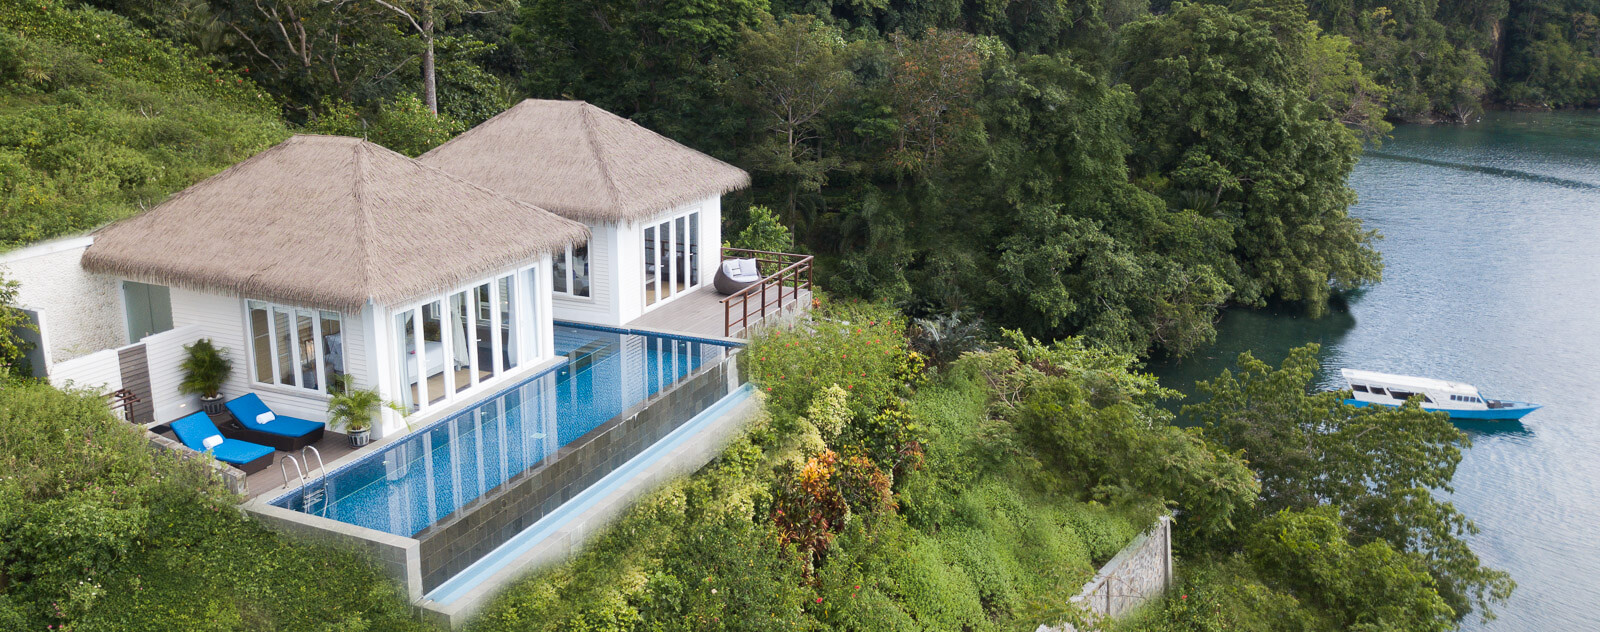 Aerial photo of the Cliffside Villa at Lembeh Resort